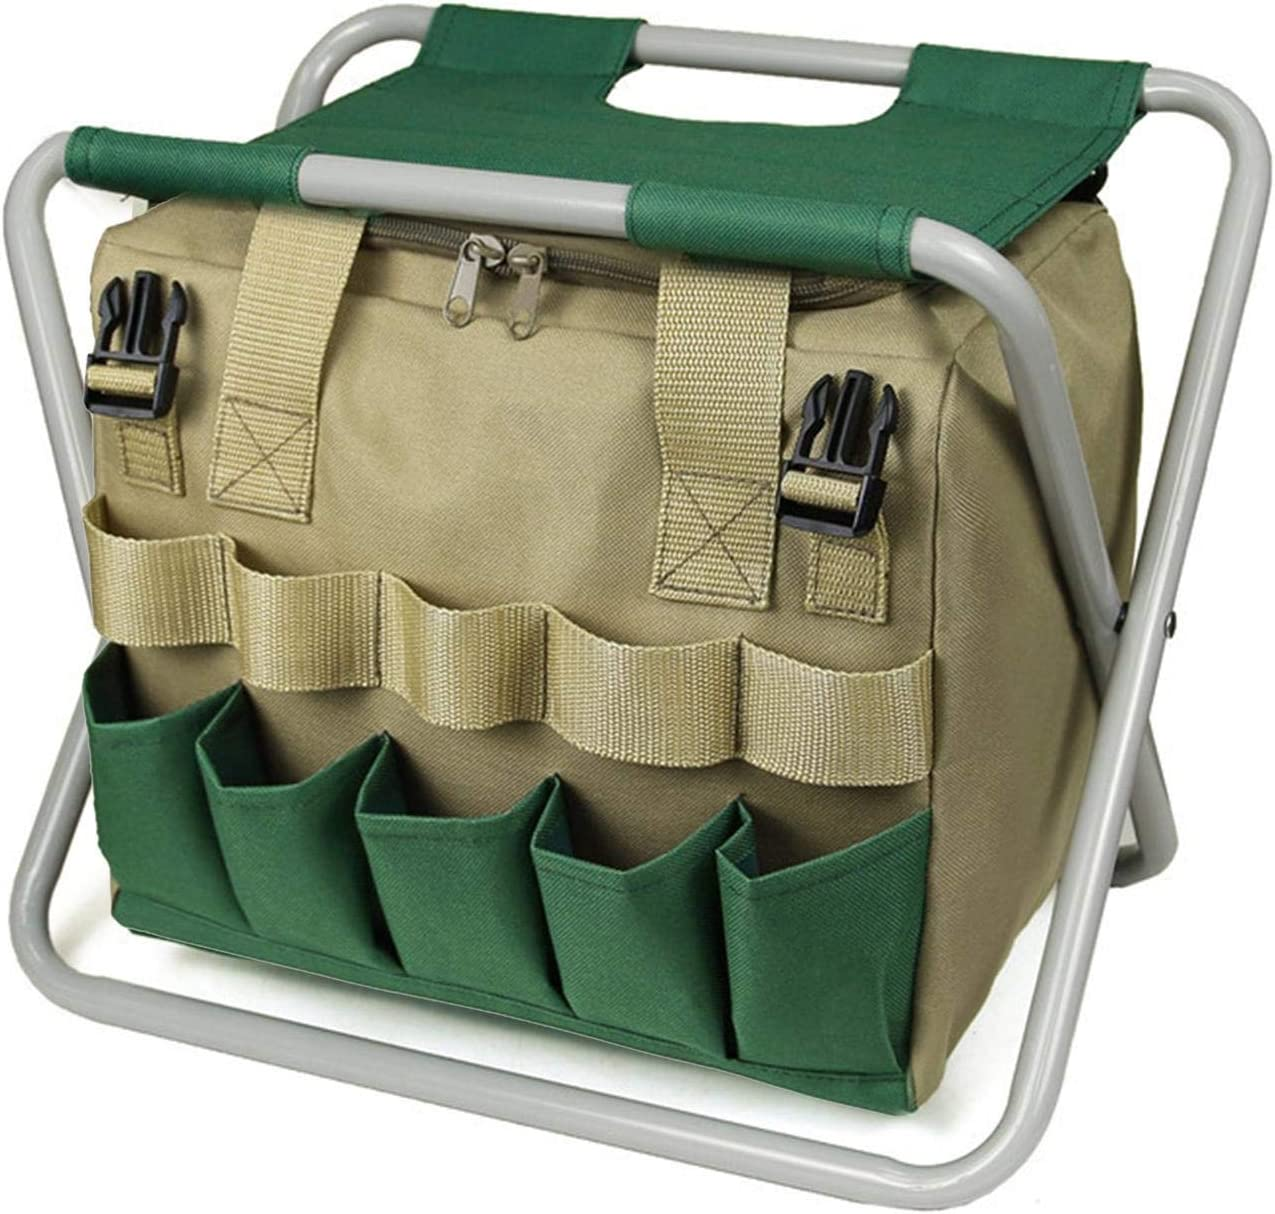 Garden Tools Stool, Folding Gardening Stool Chair with 1 Tote Bag, Sturdy Portable Garden Seat Garden Tool Organizer Seat, Gardening Gifts Set for Mom/Dad and Gardeners (Without Tools)